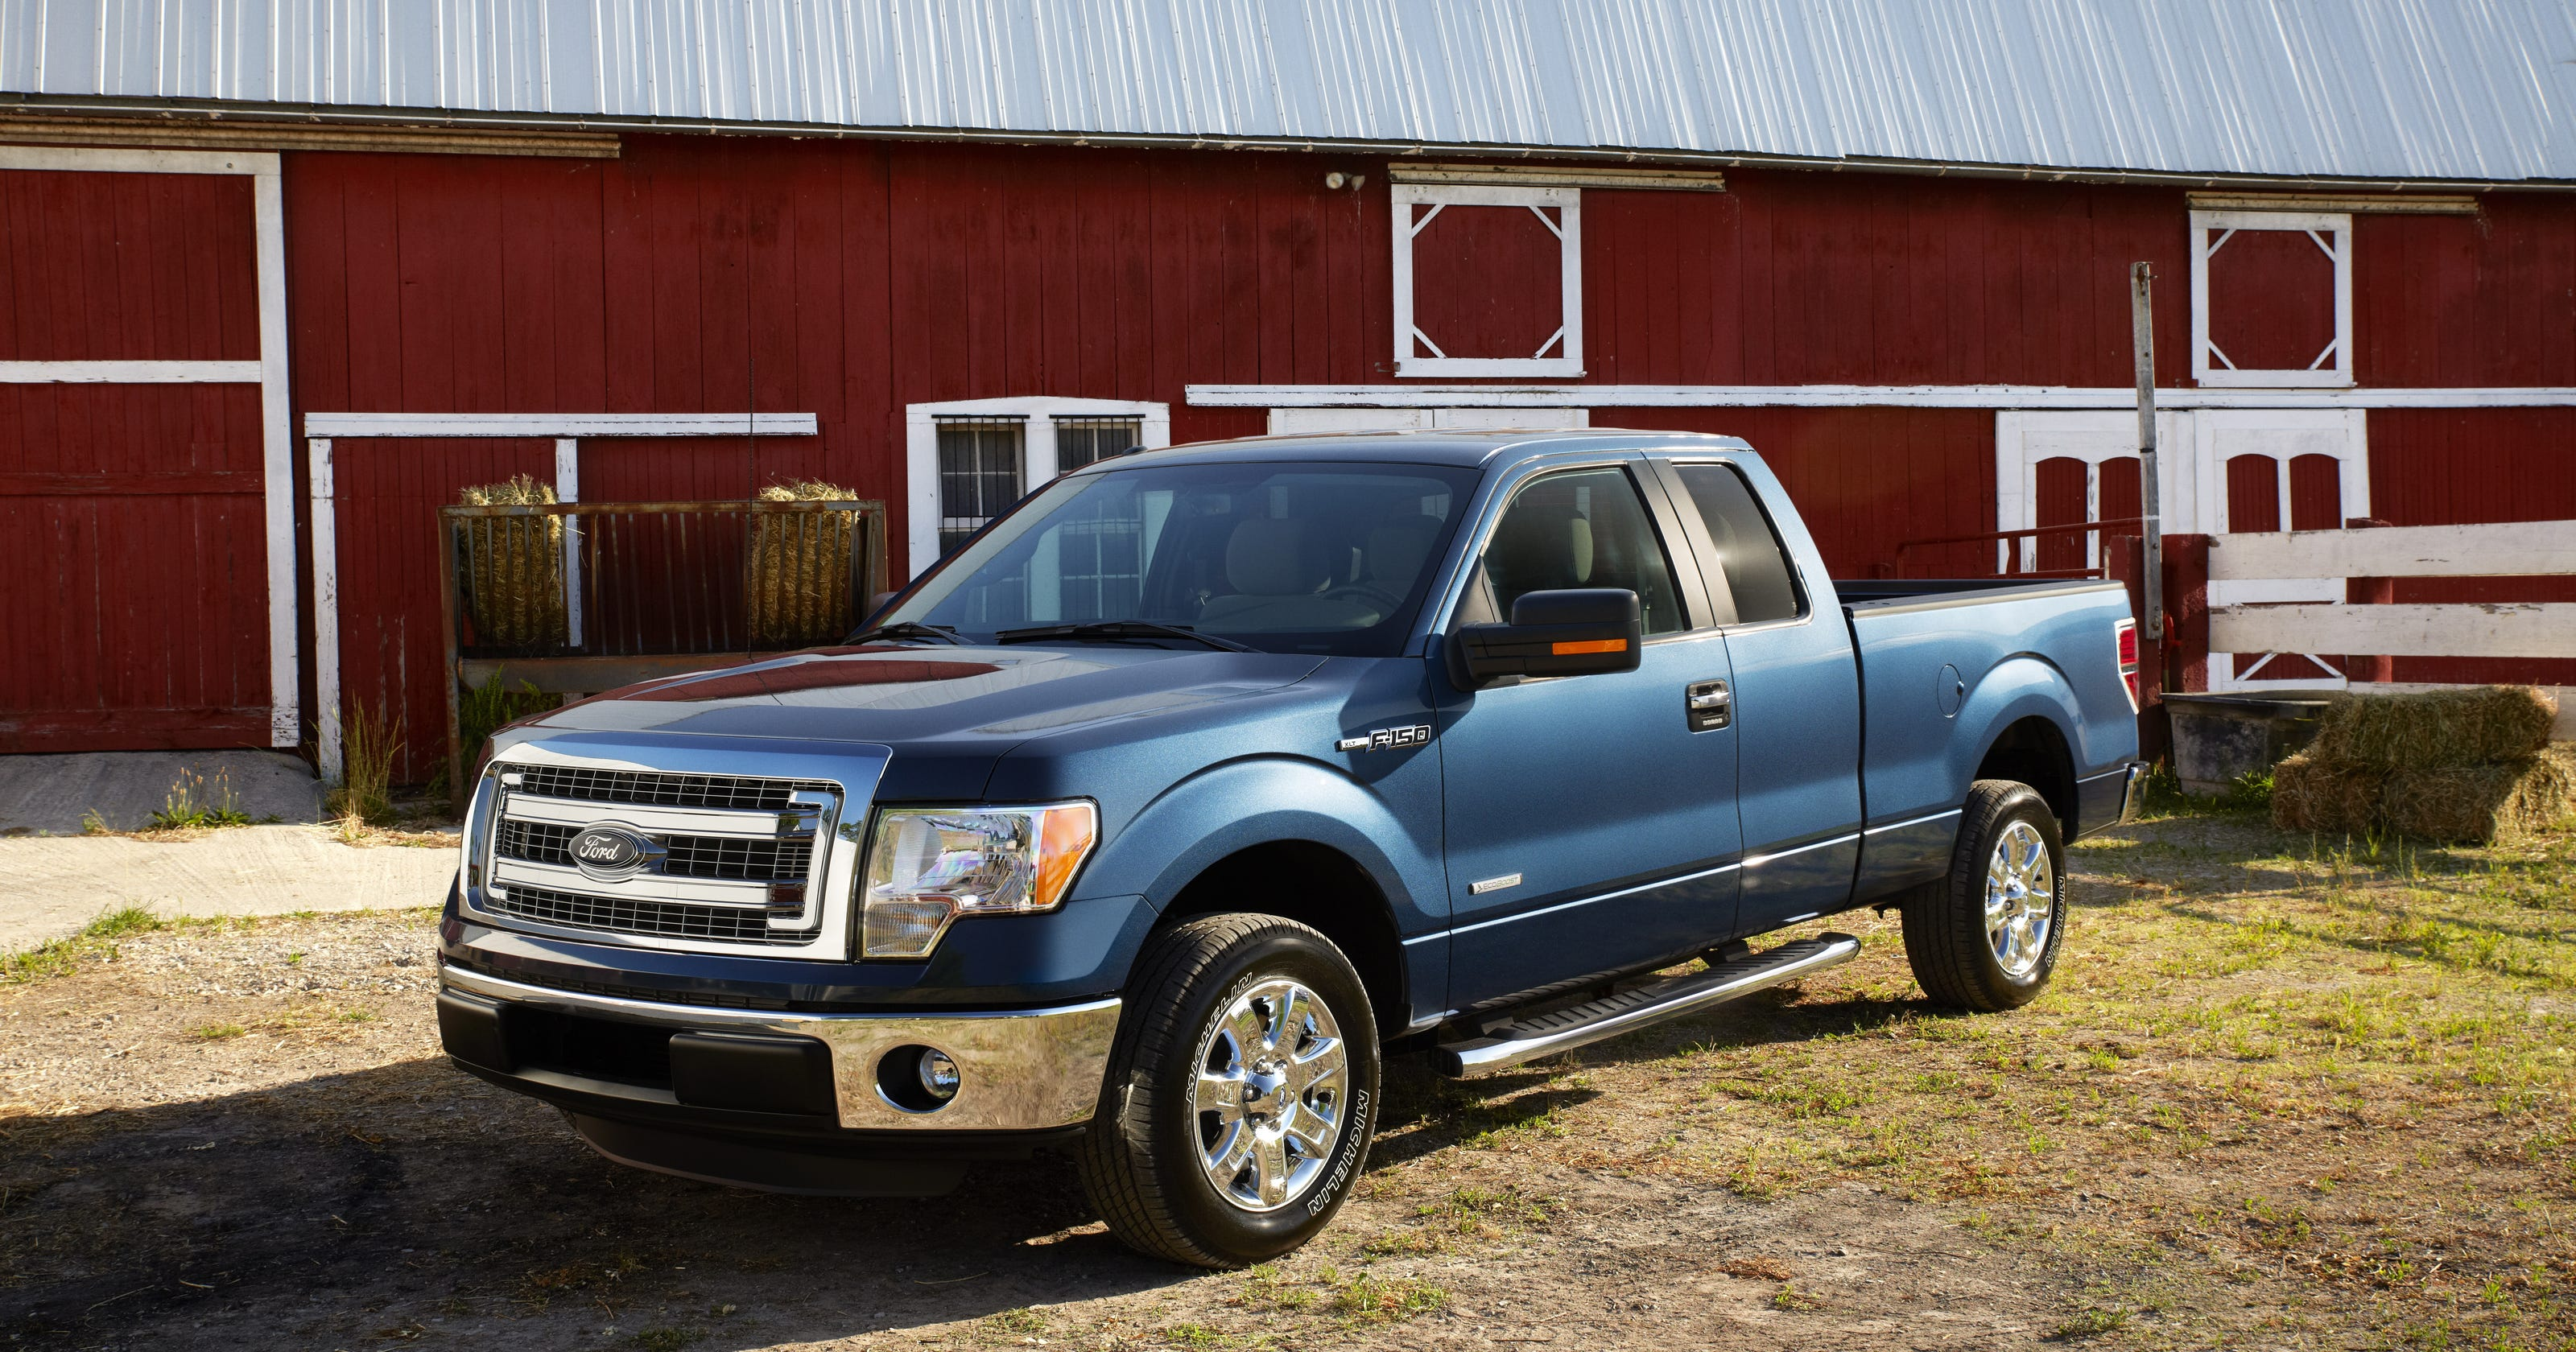 U s regulator examining ford transmission recall involving f 150 model